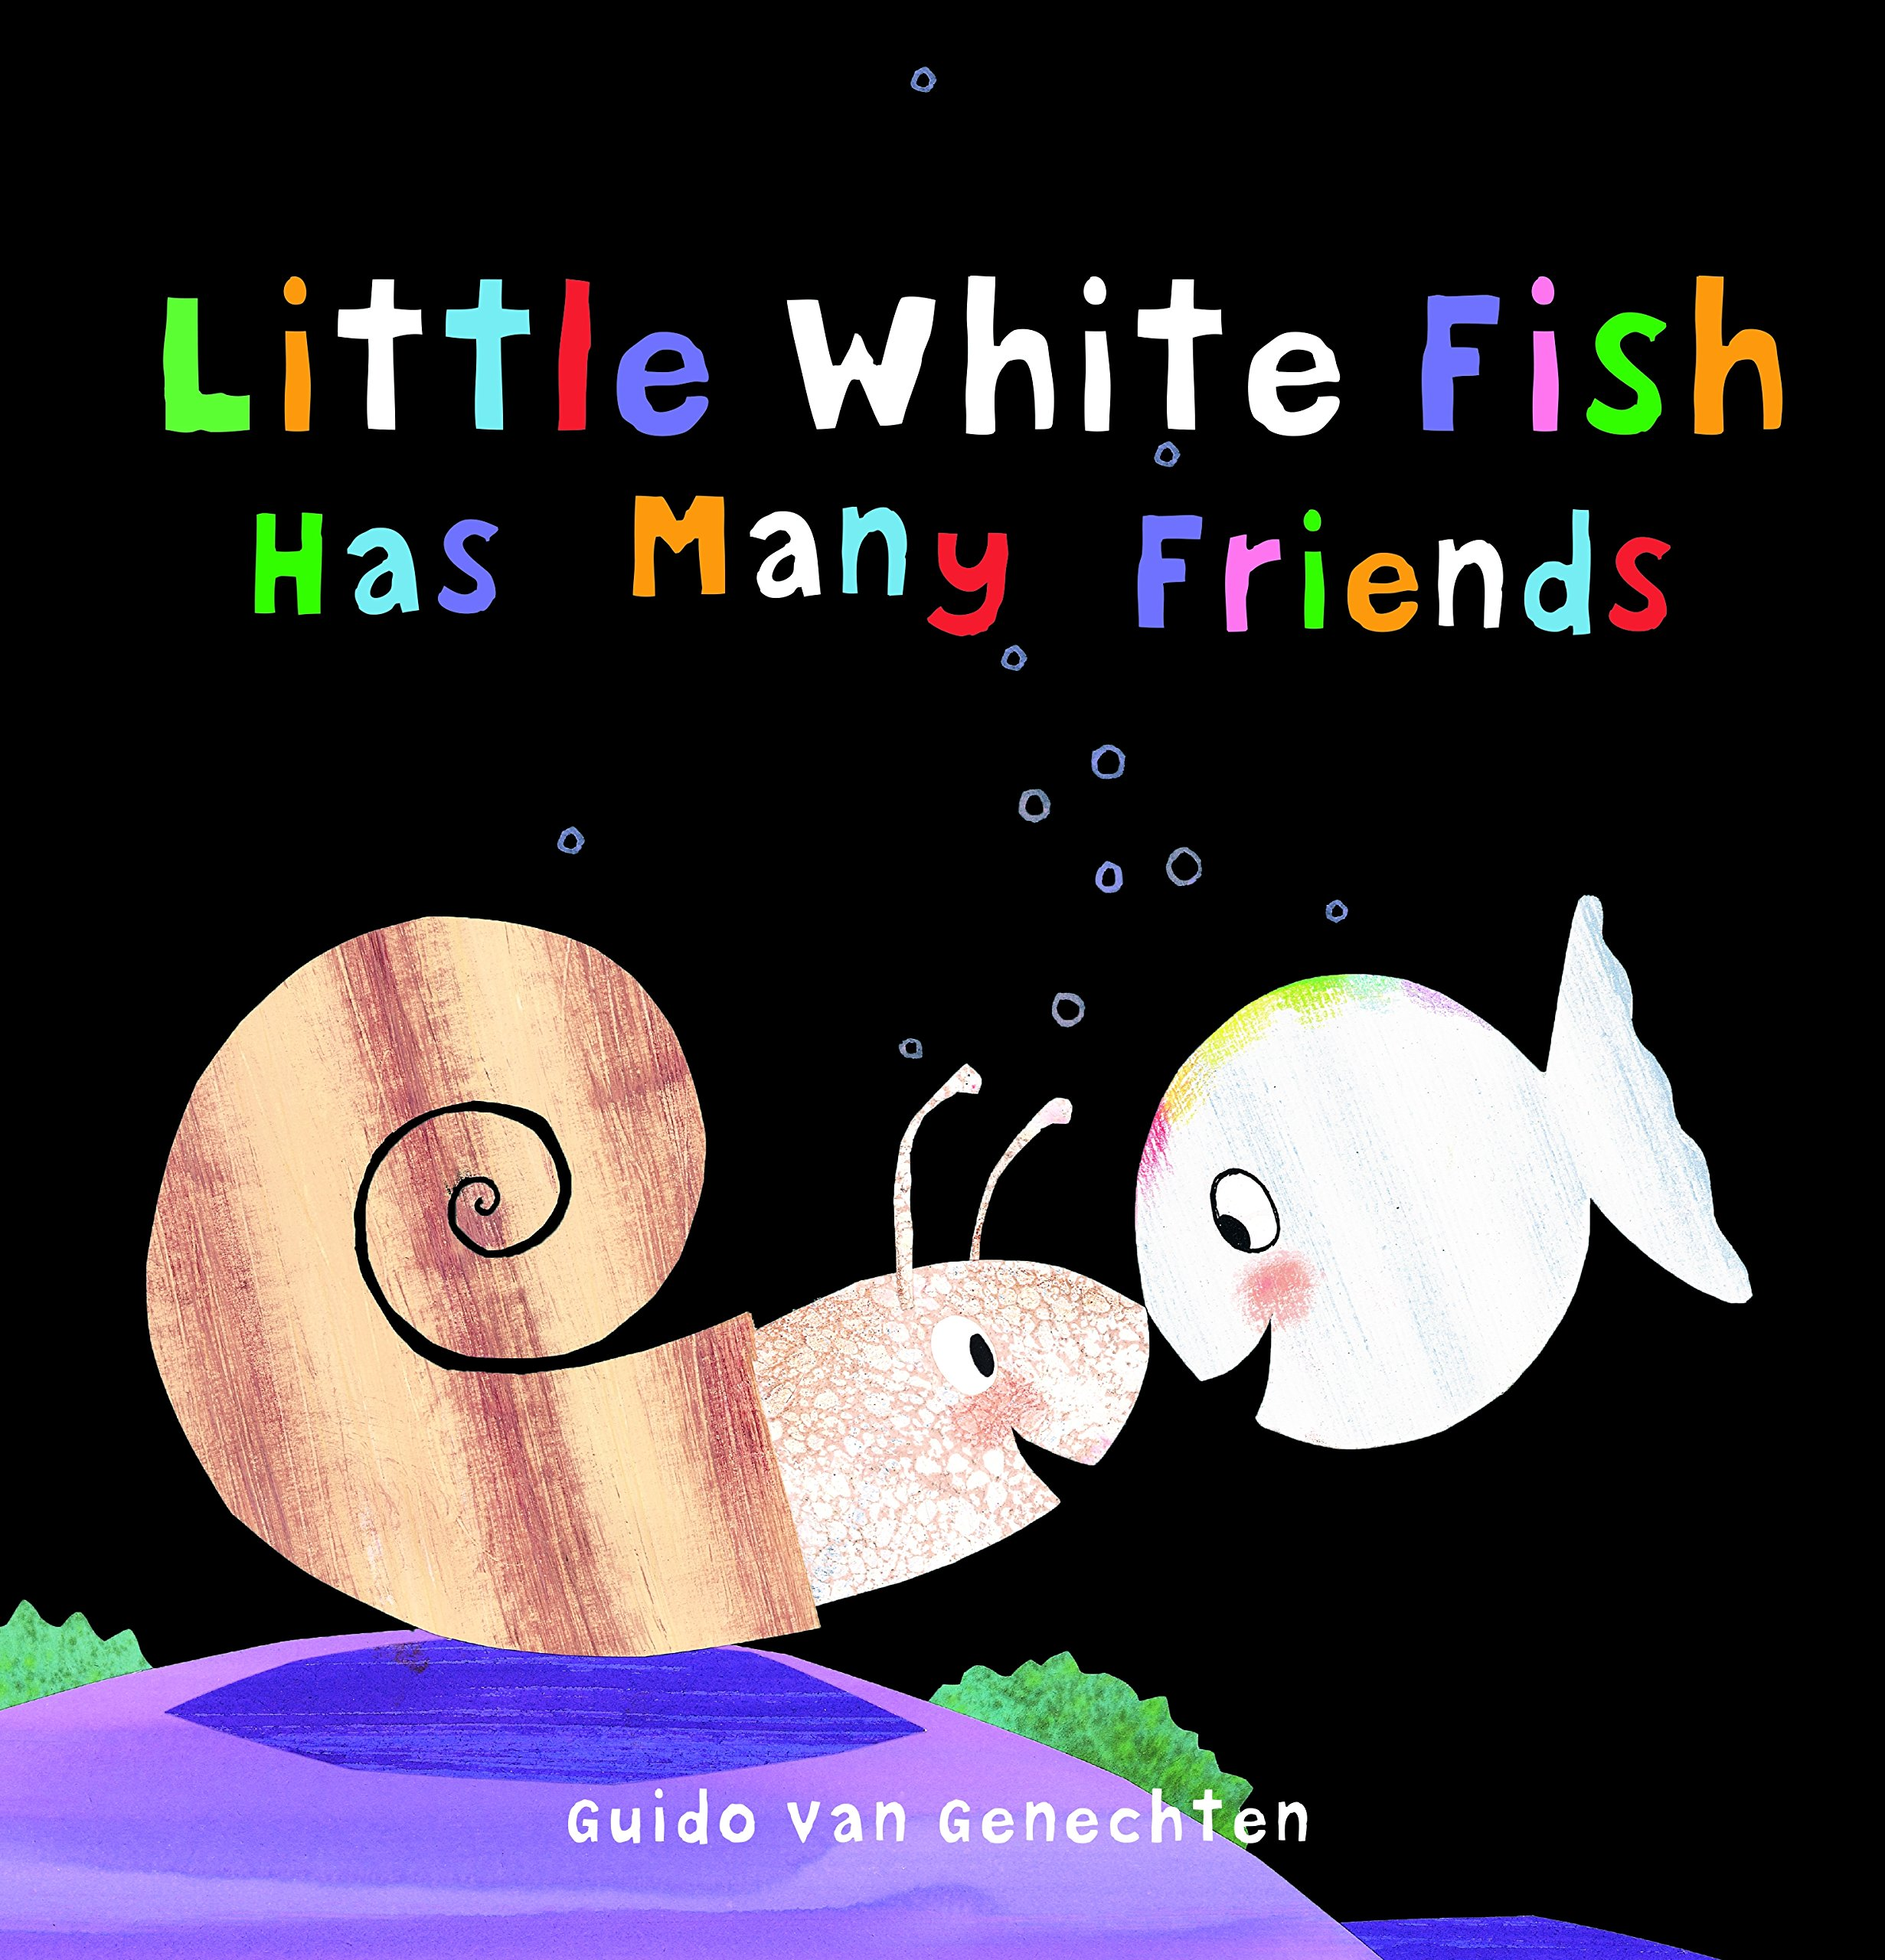 Little White Fish Has Many Friends